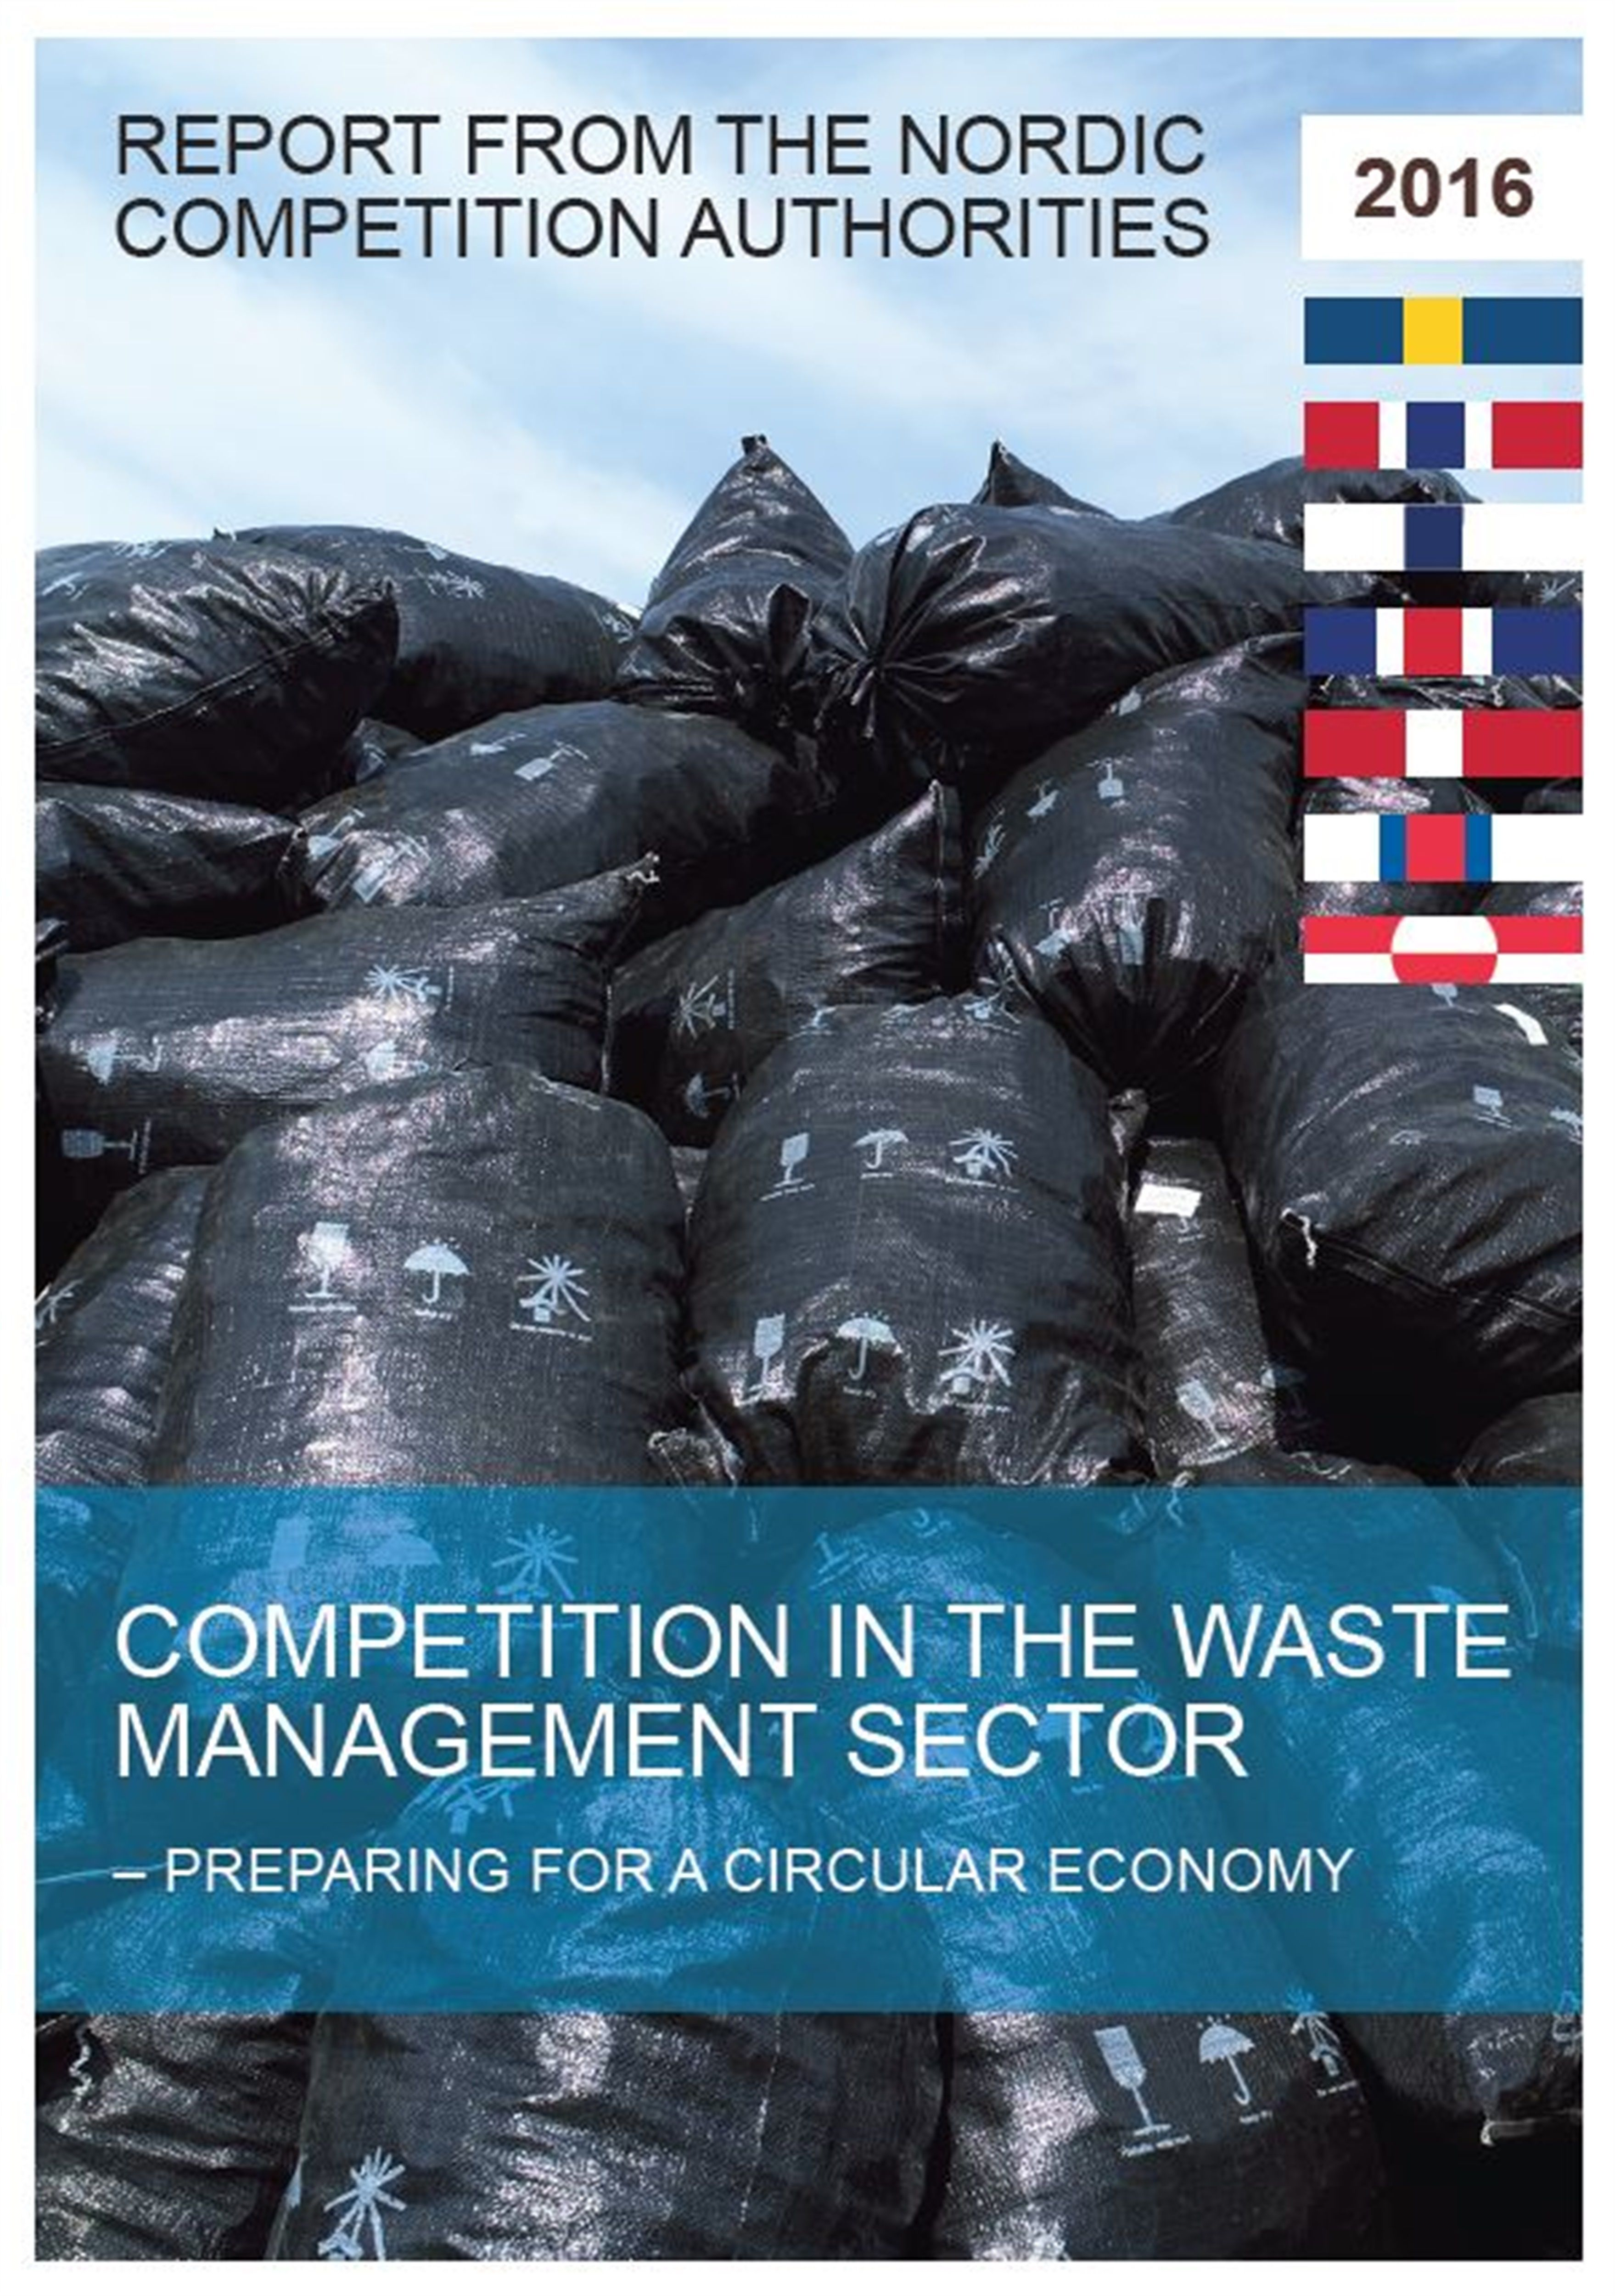 competition-in-the-waste-management-sector---nordisk-rapport